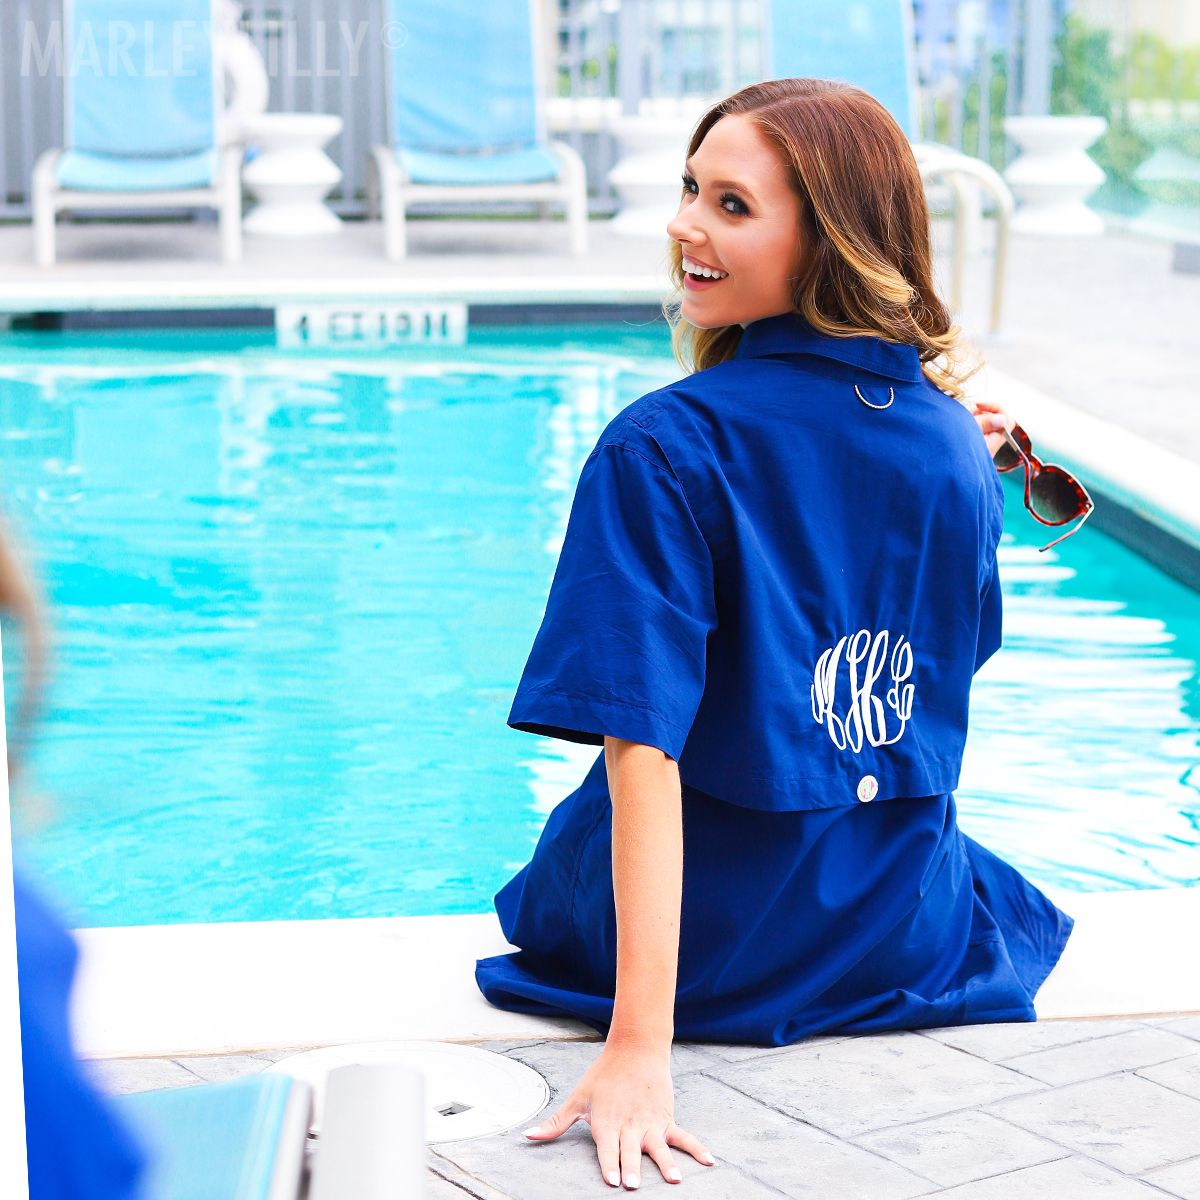 305e705939752 The Monogrammed Fishing Shirt in Navy makes for a perfect coverup for those  days by the pool with your girls! #summertimefun #coverups